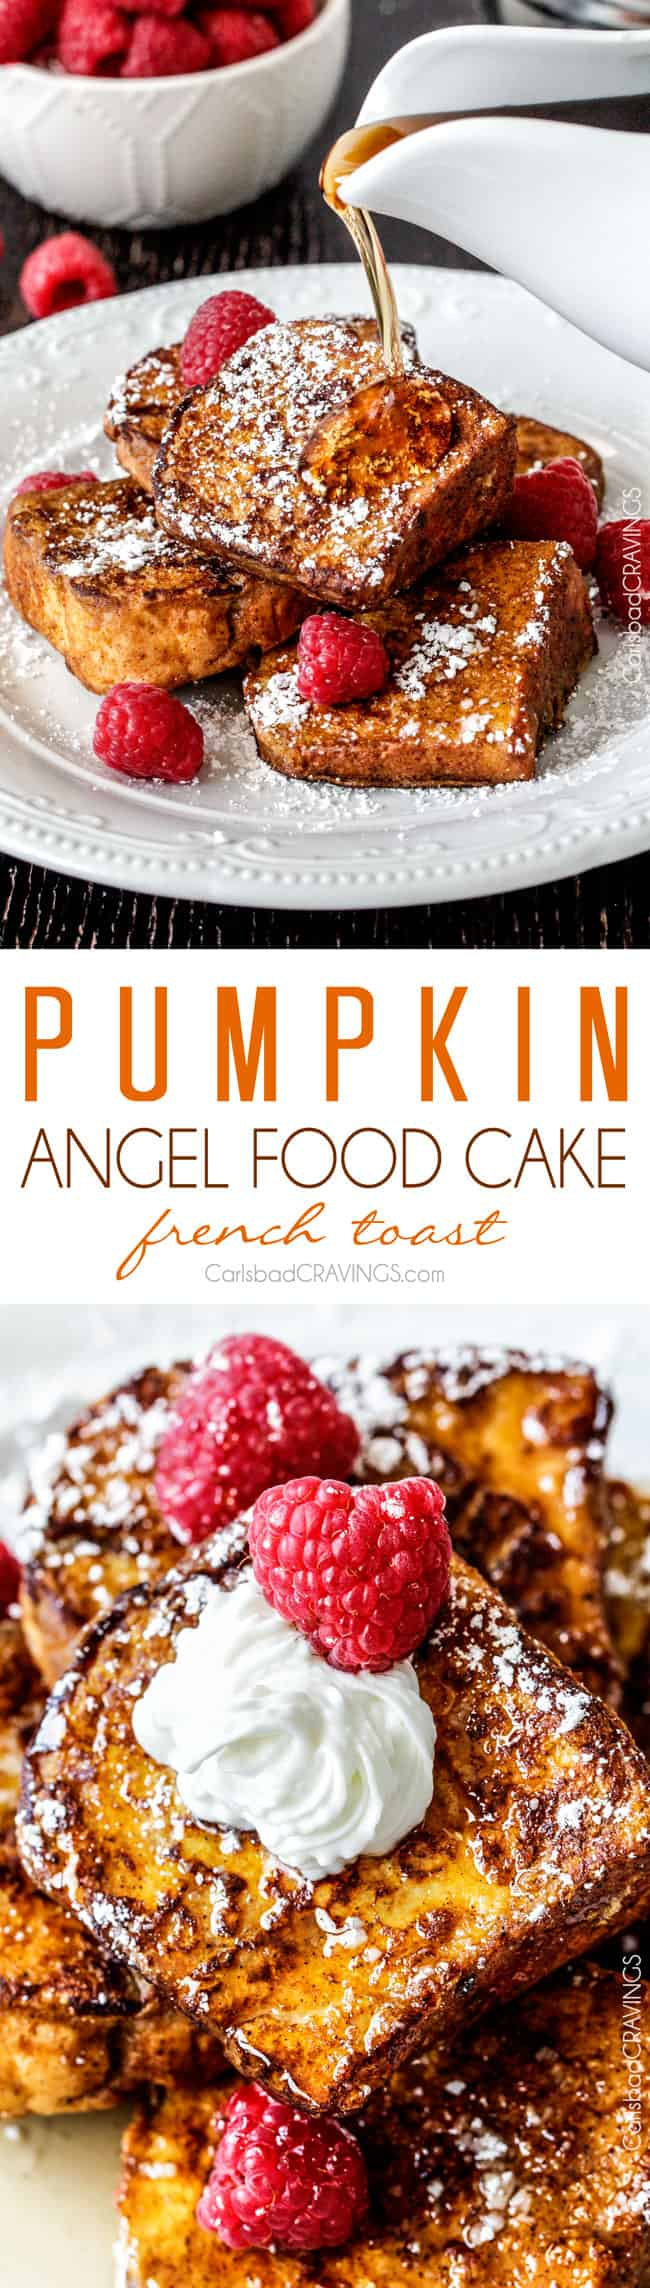 BEST Pumpkin French Toast Ever! Angel food Cake French toast dipped in Pumpkin batter - the perfect texture of toasted on the outside, light, airy and slightly sweet cake heaven on the inside.